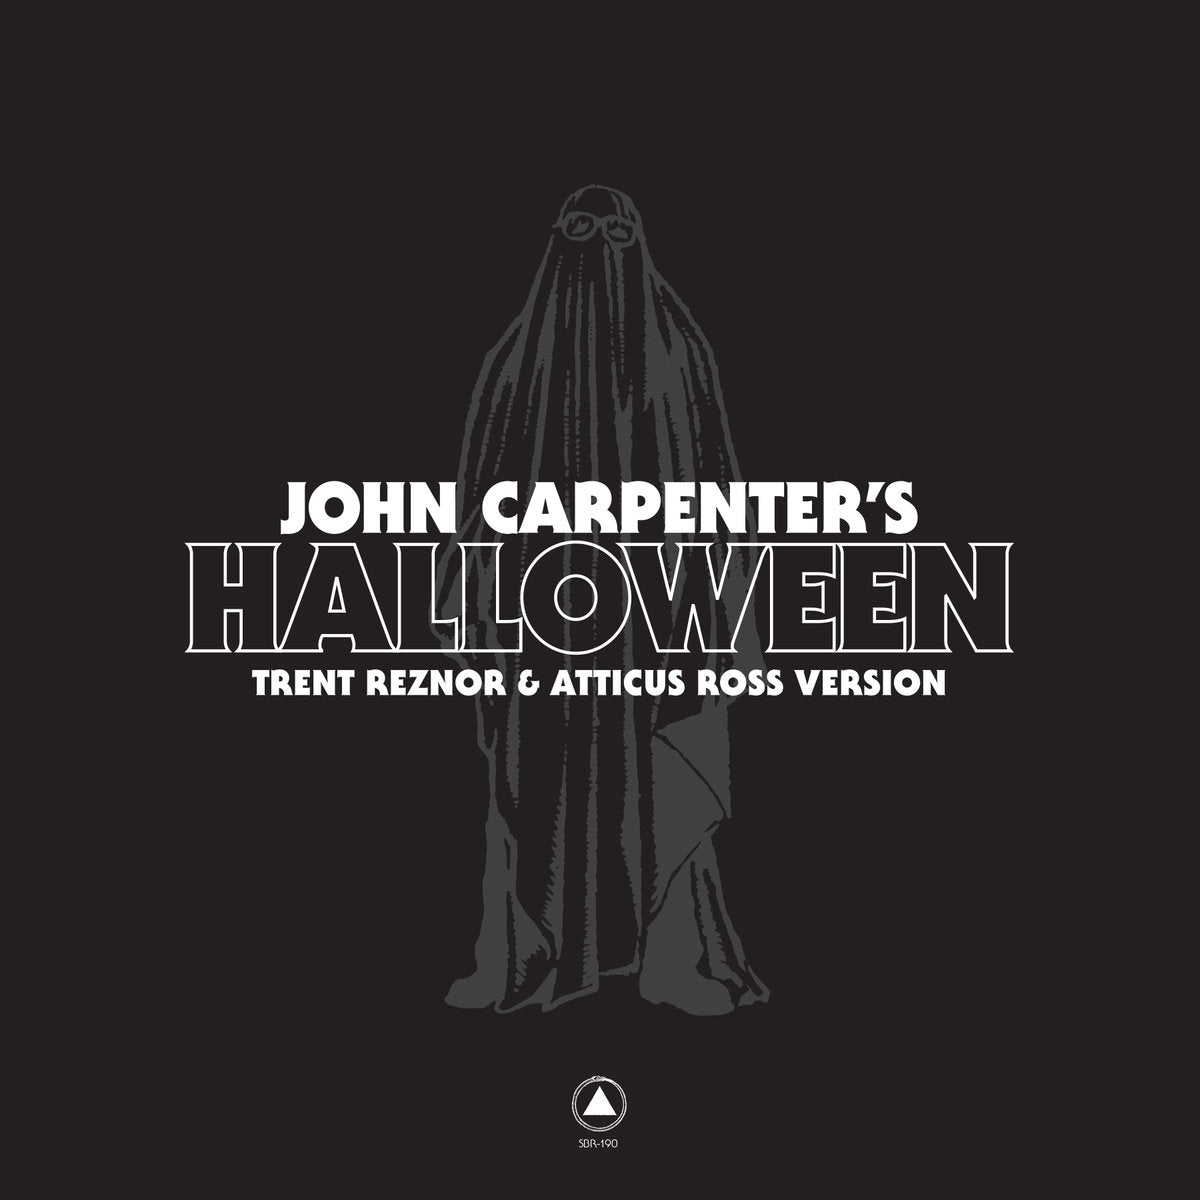 Trent Reznor & Atticus Ross - John Carpenter's Halloween 12""